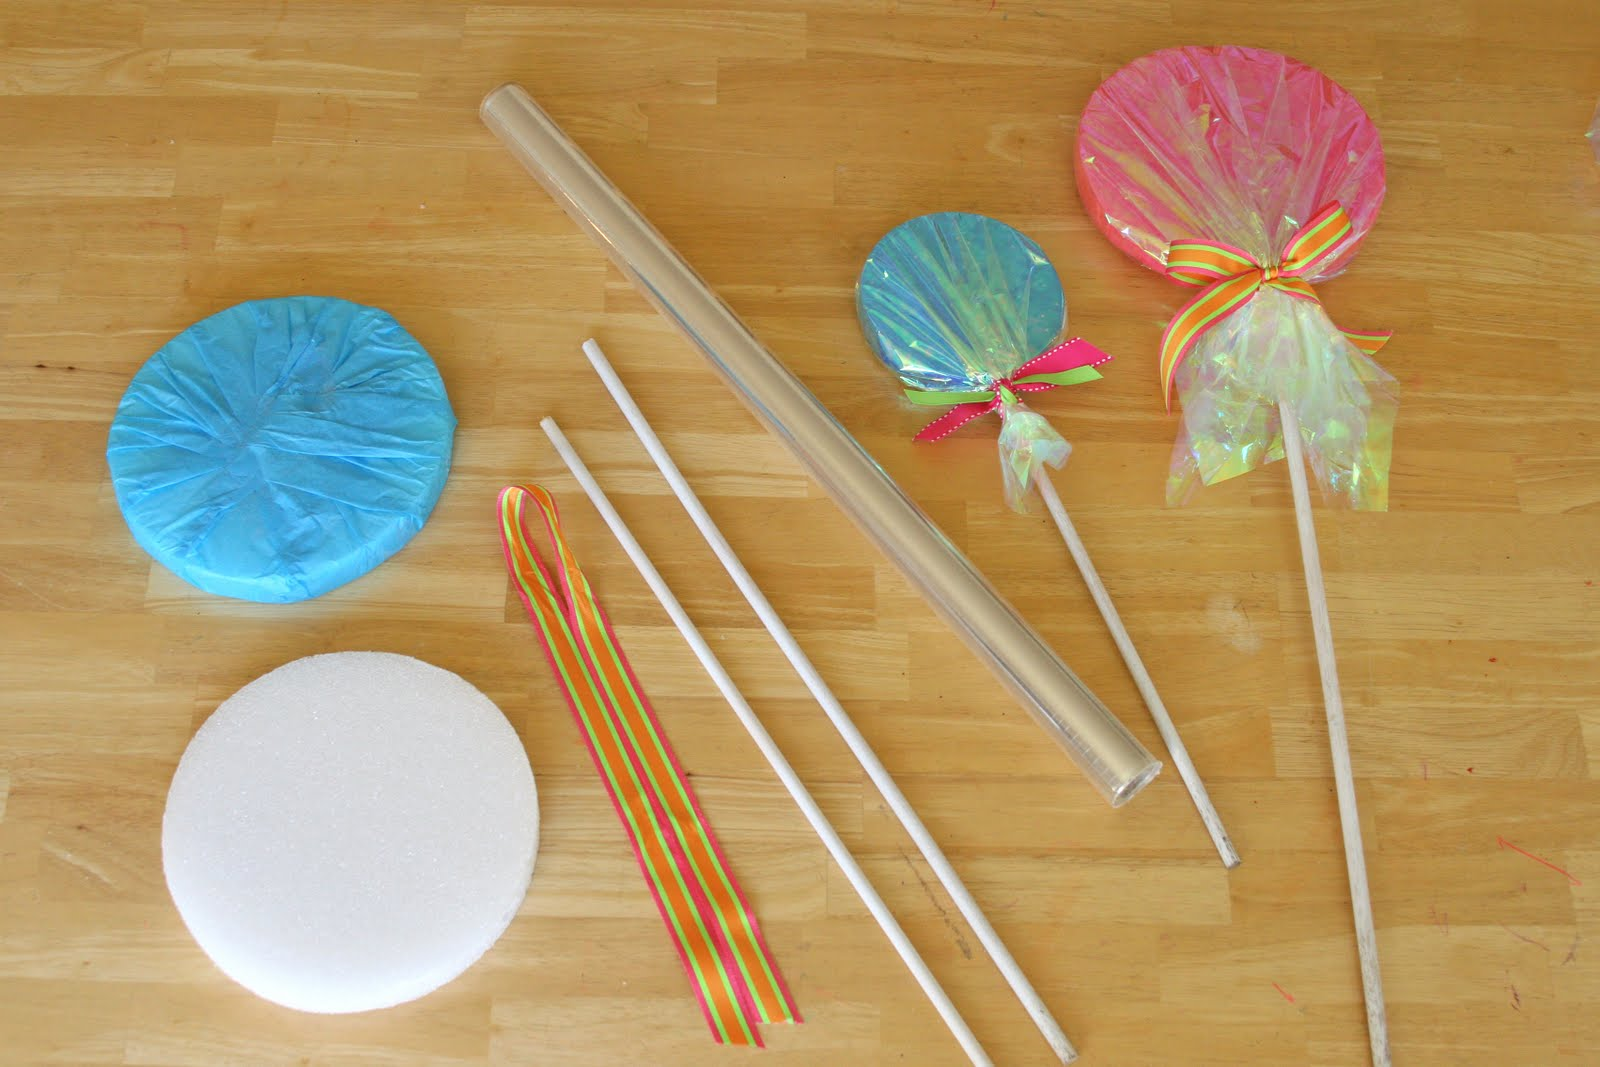 How-to} Make Giant Lollipop Decorations